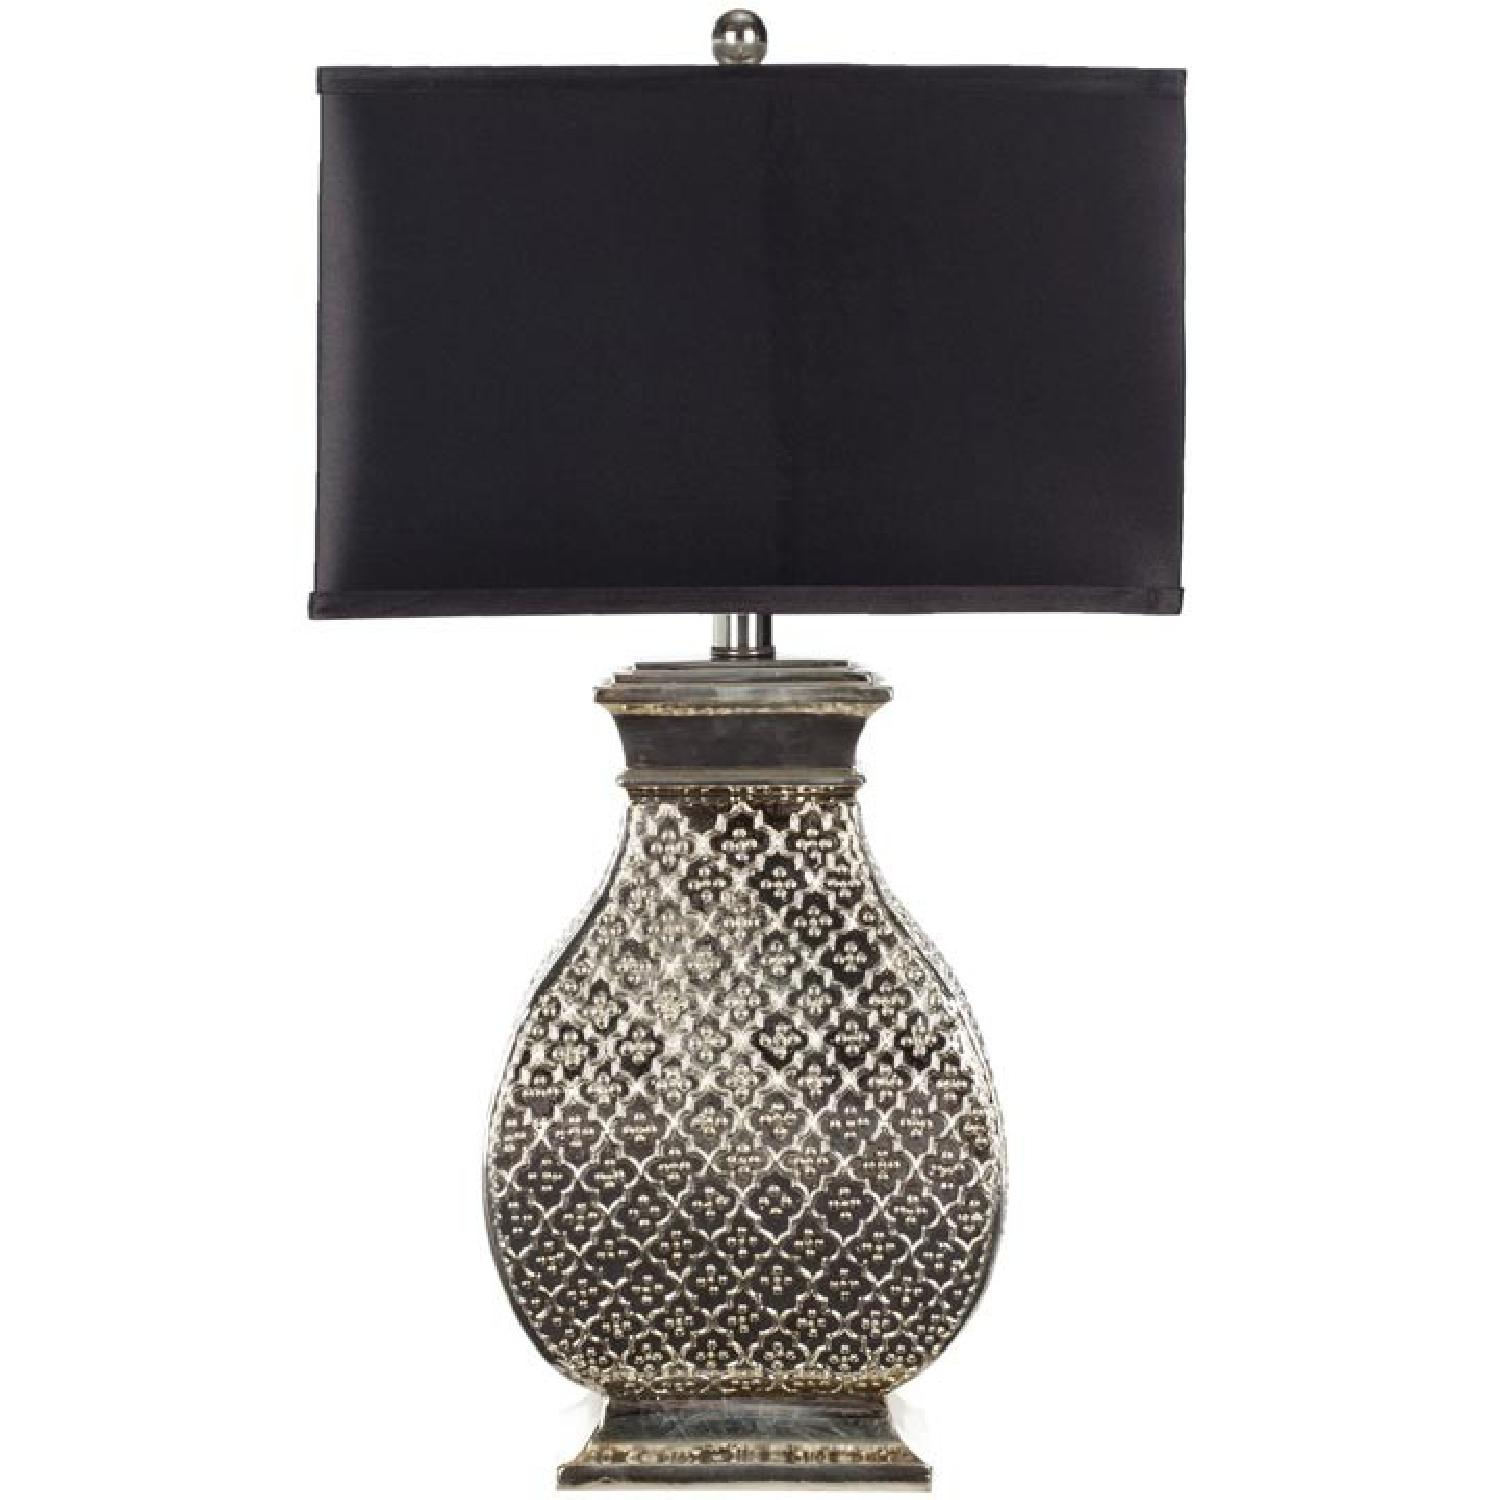 Spanish Revival Table Lamps